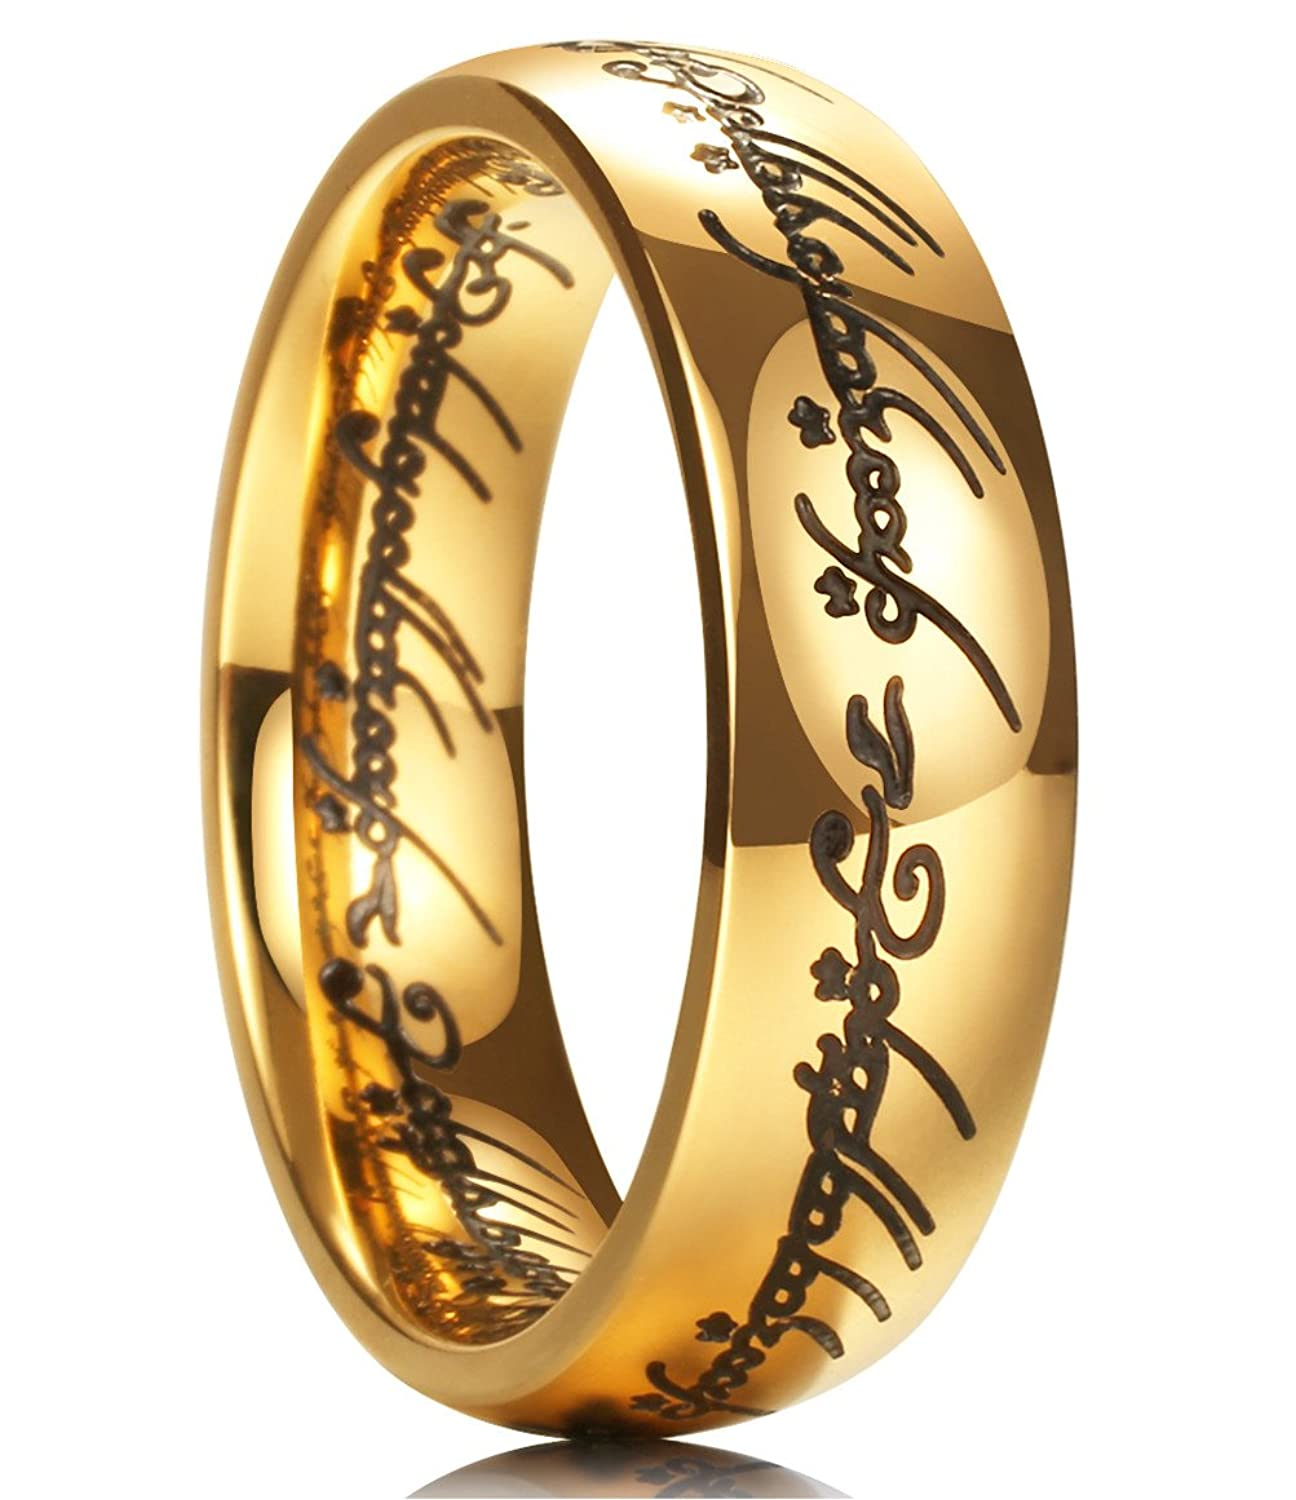 king will magic 7mm titanium ring gold plated lord of ring comfort fit wedding band for men women amazoncom - Lord Of The Rings Wedding Band